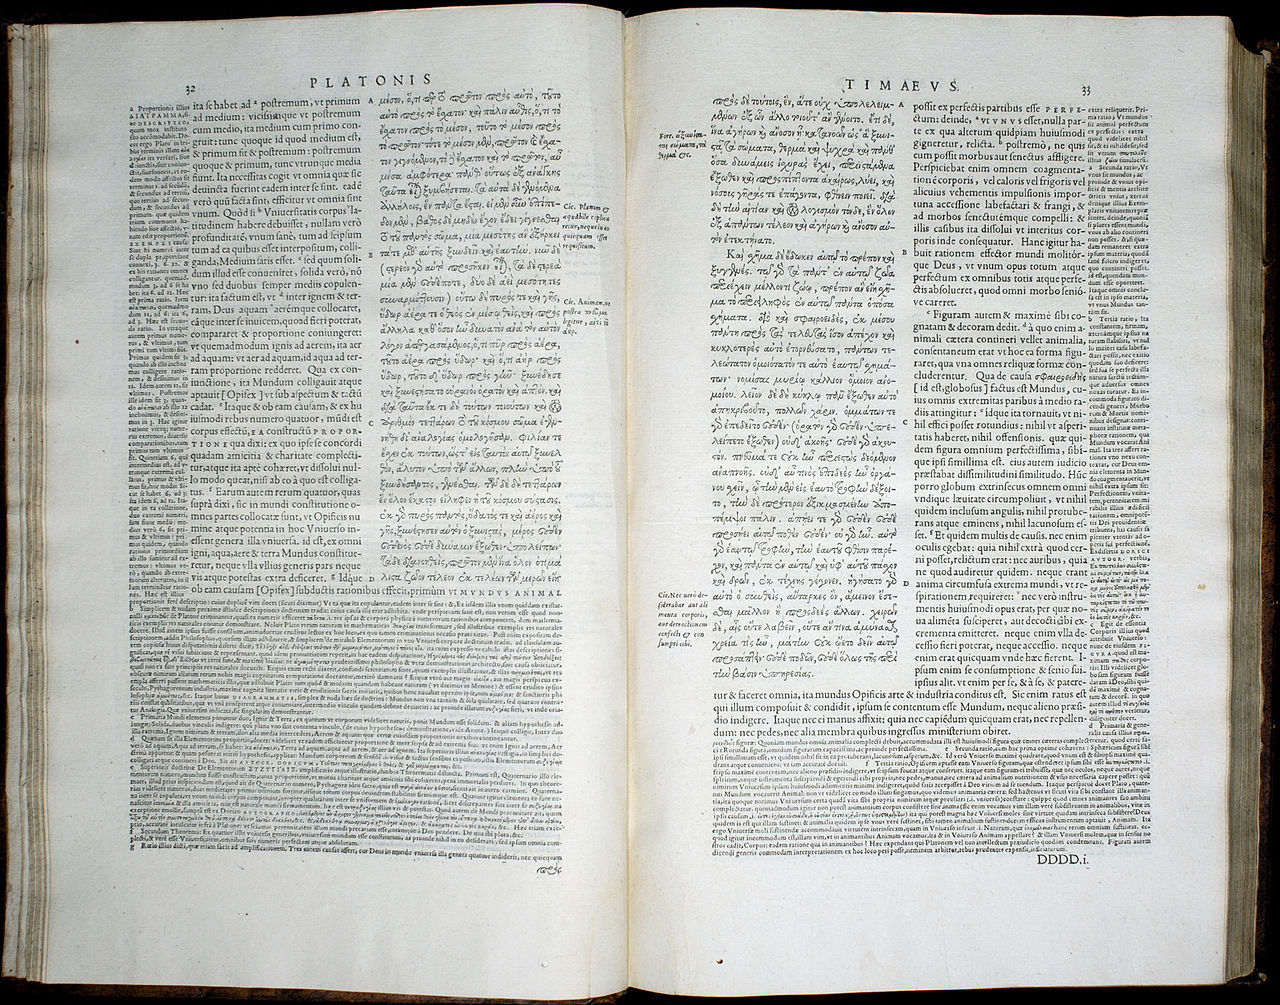 plato the republic pdf with line numbers